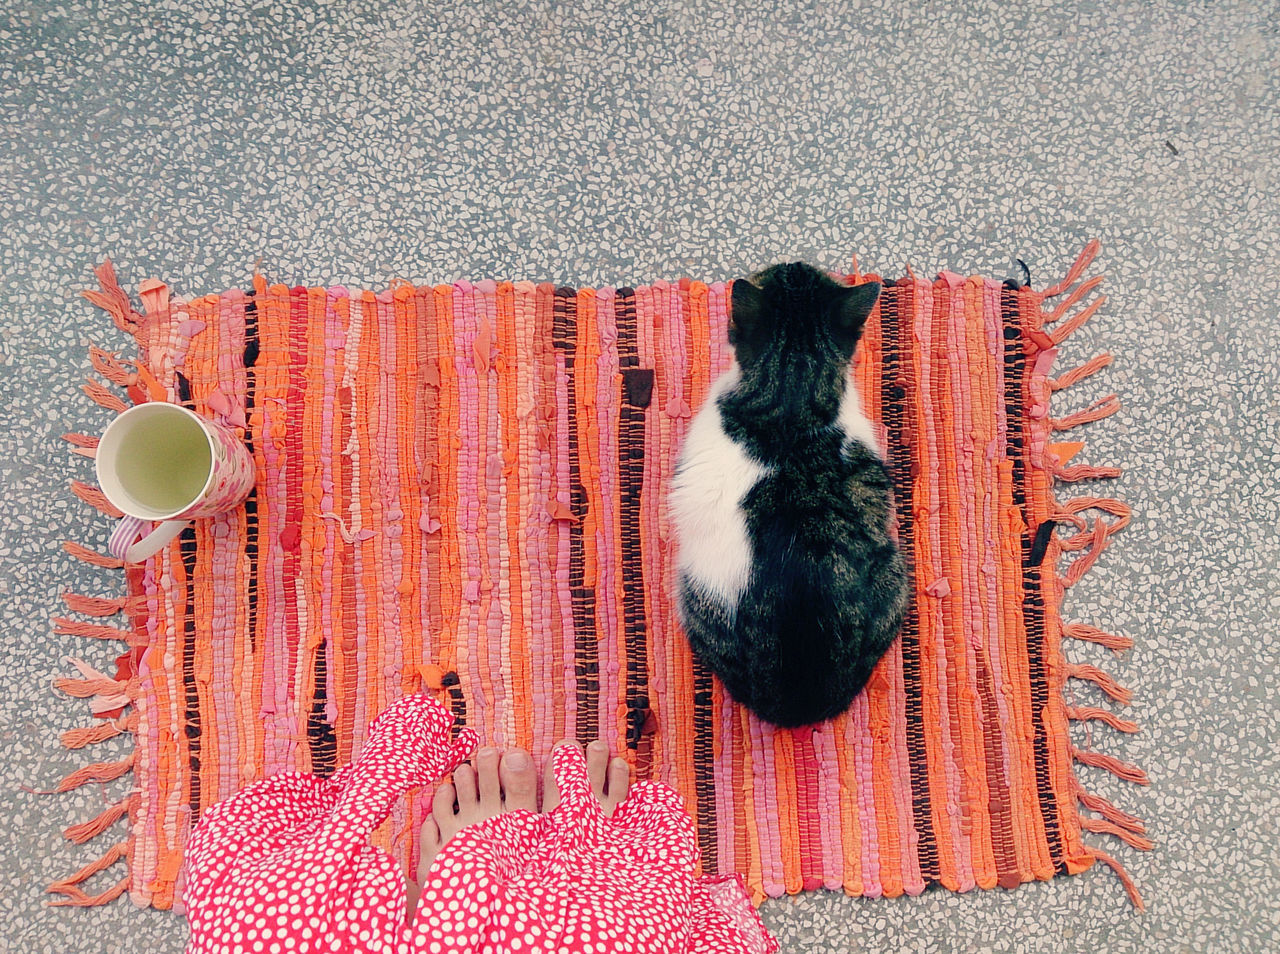 View from above of a woman drinking tea with her cat Beverage Cat Comfort Company Cozy Directly Above Domestic Domestic Animals Enjoying Life Floor Happy Moments High Angle View Home Indoors  Kitty Lifestyle Morning Pet Quiet Relaxing Rug Simple Slow Life Slow Living Weekend